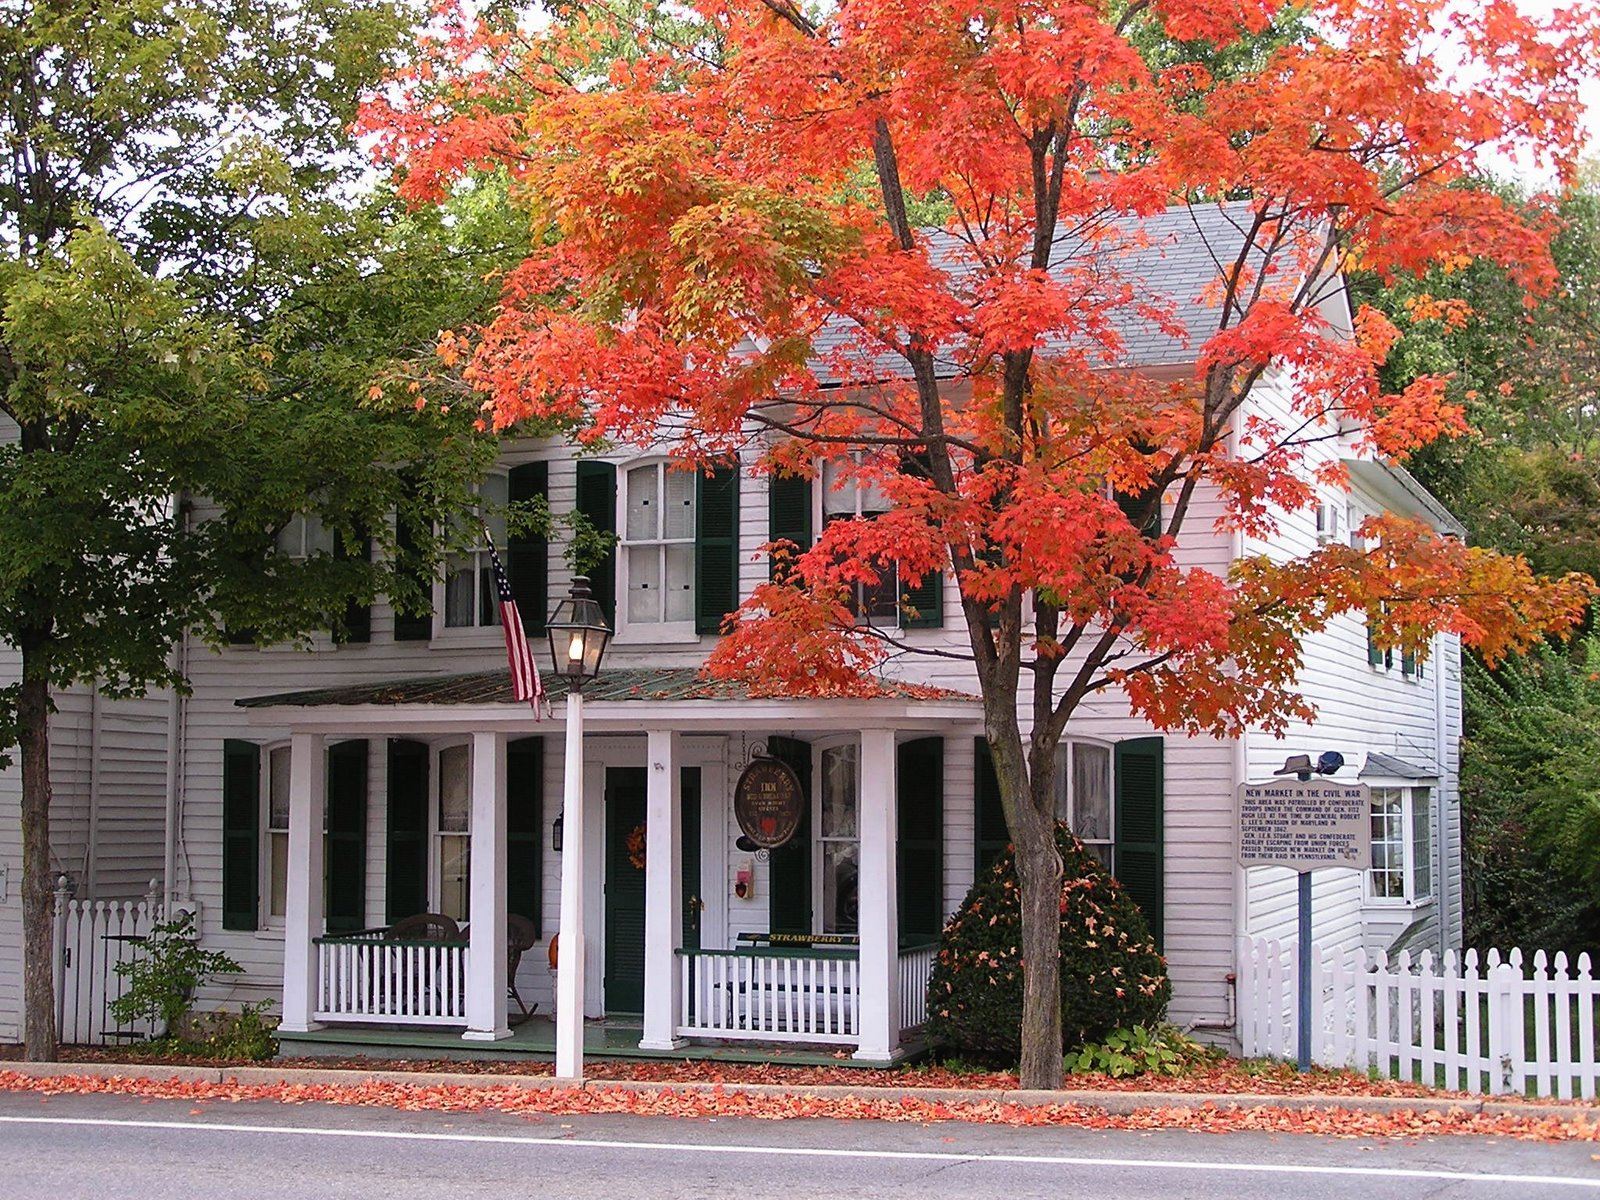 autumn in New Market, Maryland